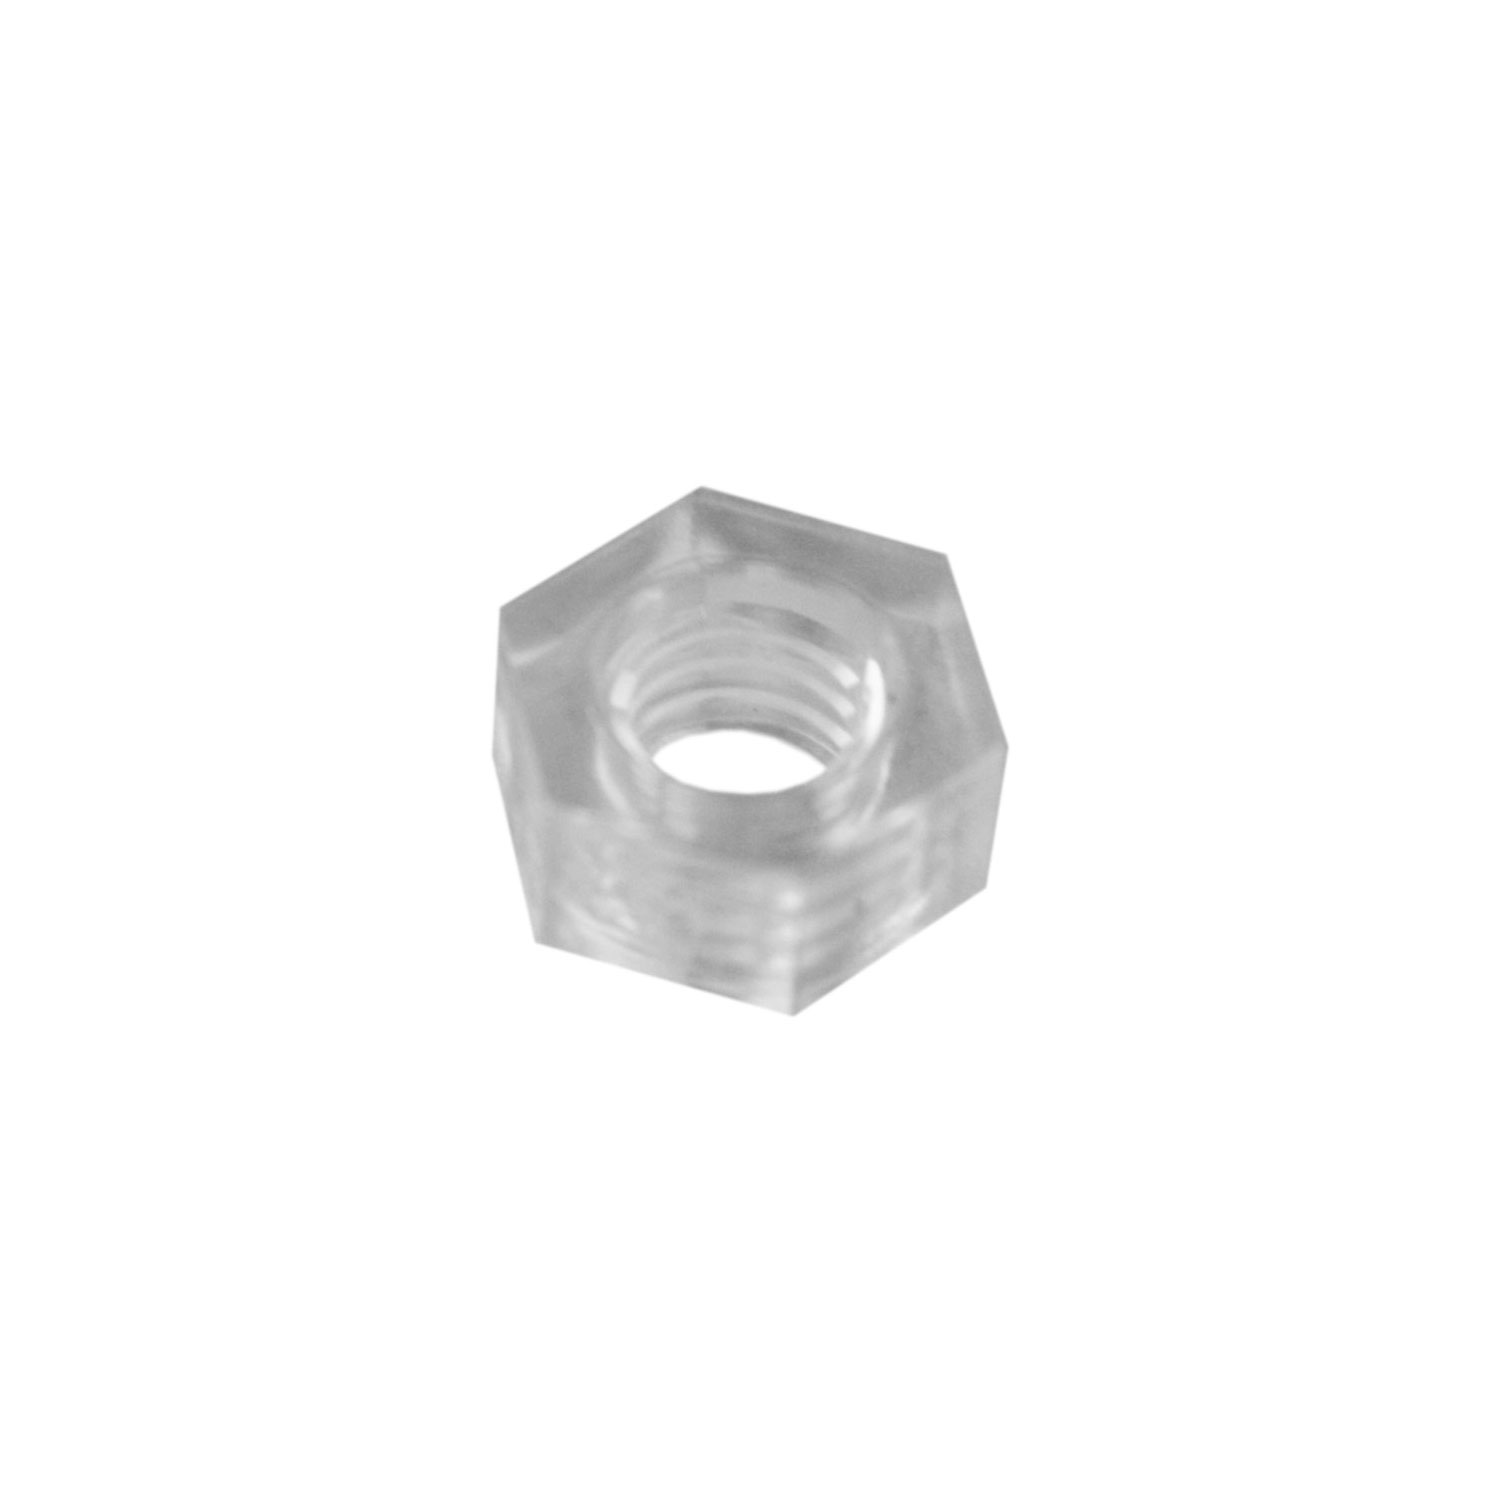 Yamaha 6mm Hexagonal Nut for SFZ Marching Snare